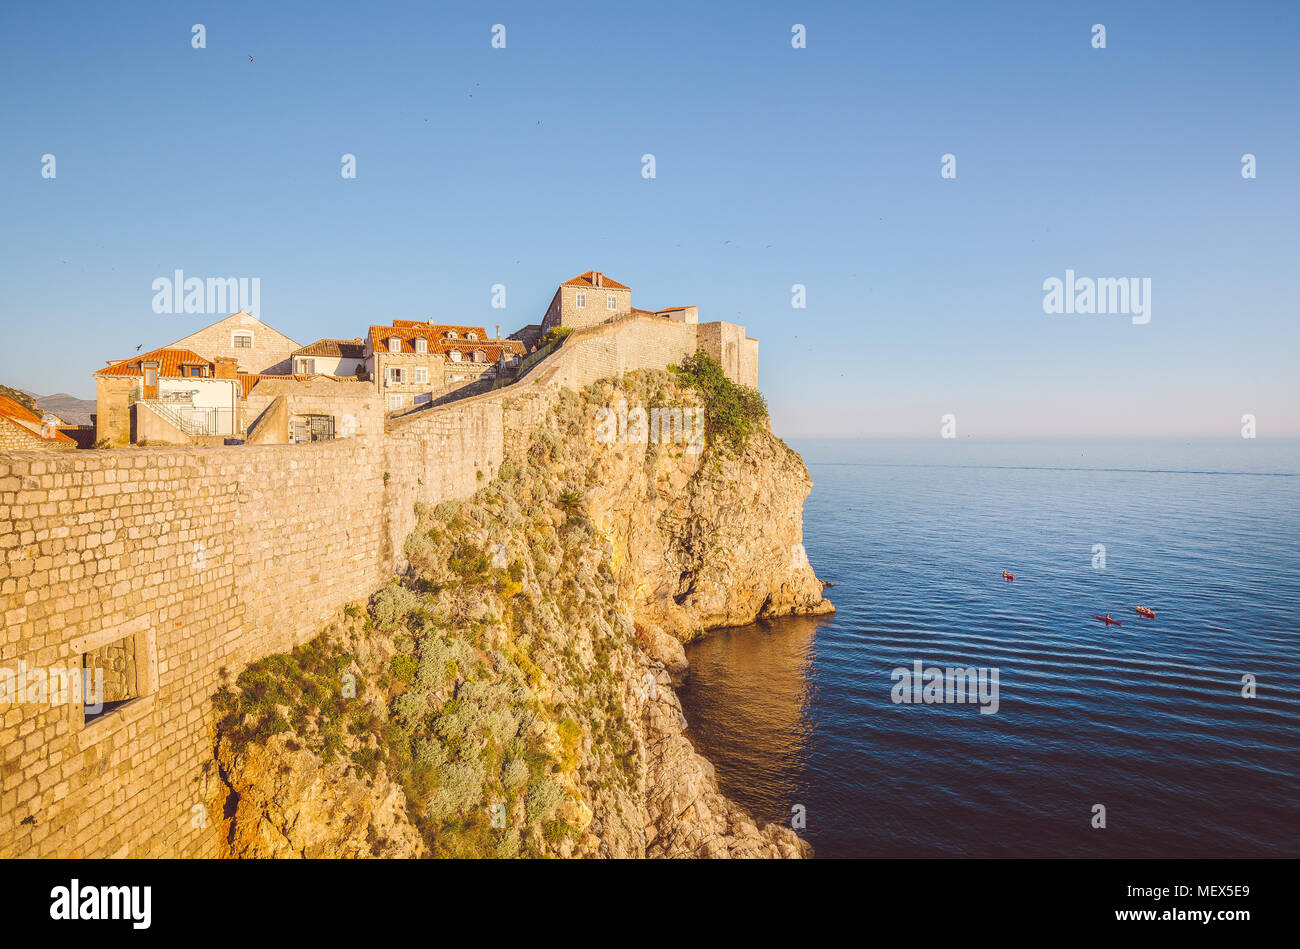 Panoramic view of the old town of Dubrovnik with calm sea in beautiful golden evening light at sunset with blue sky in summer, Dalmatia, Croatia - Stock Image